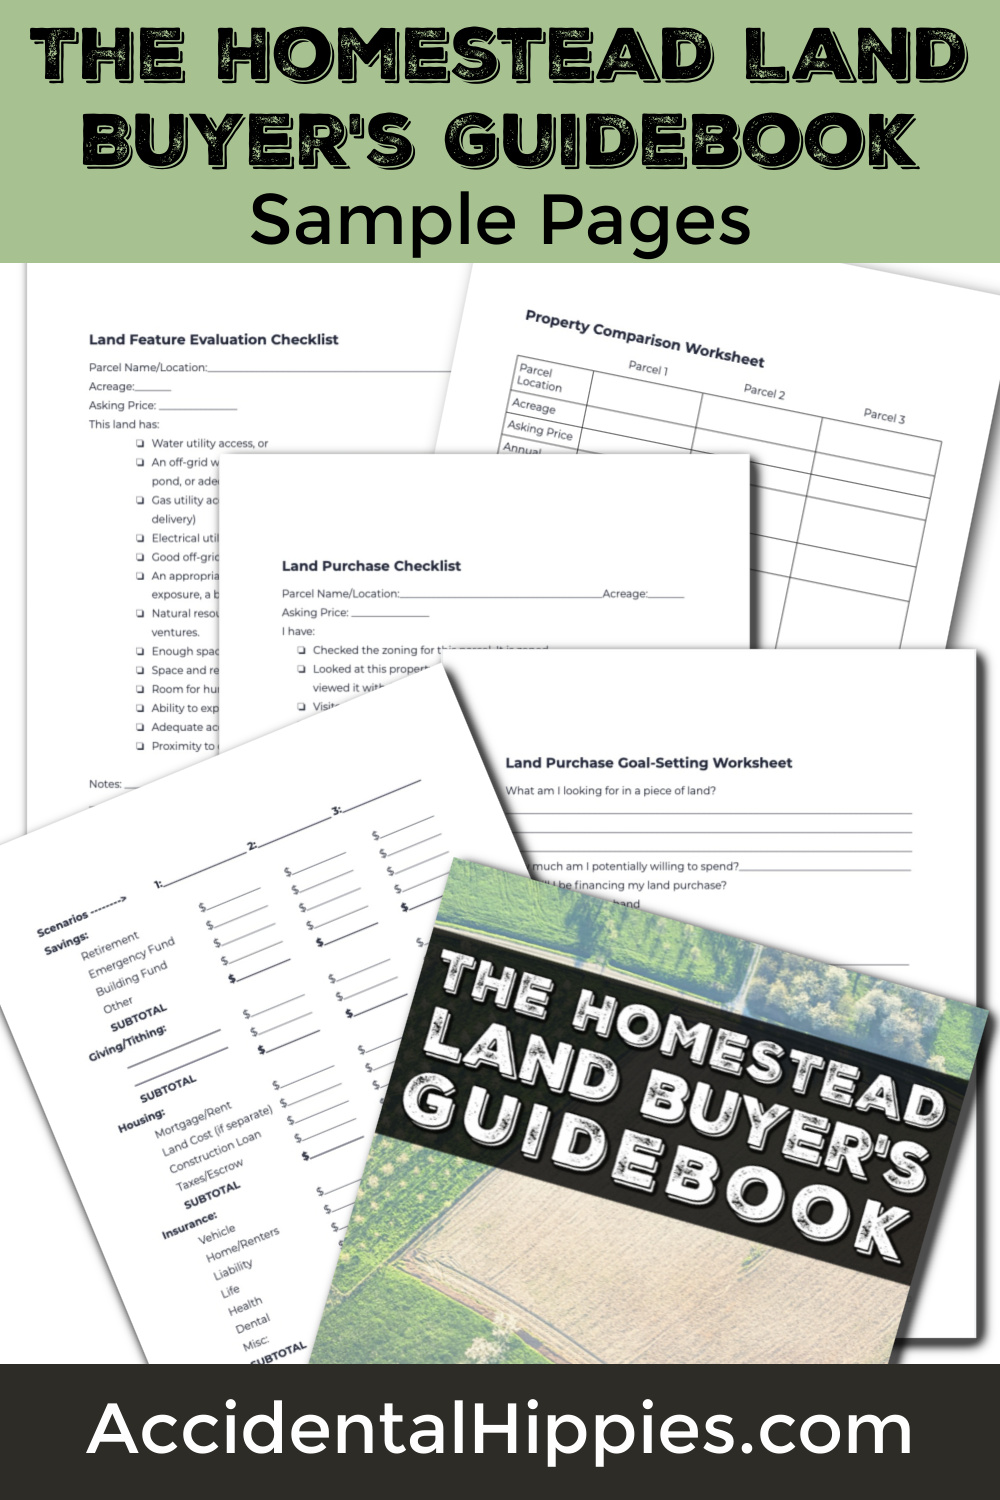 Image featuring sample sheets from The Homestead Land Buyer's Guide